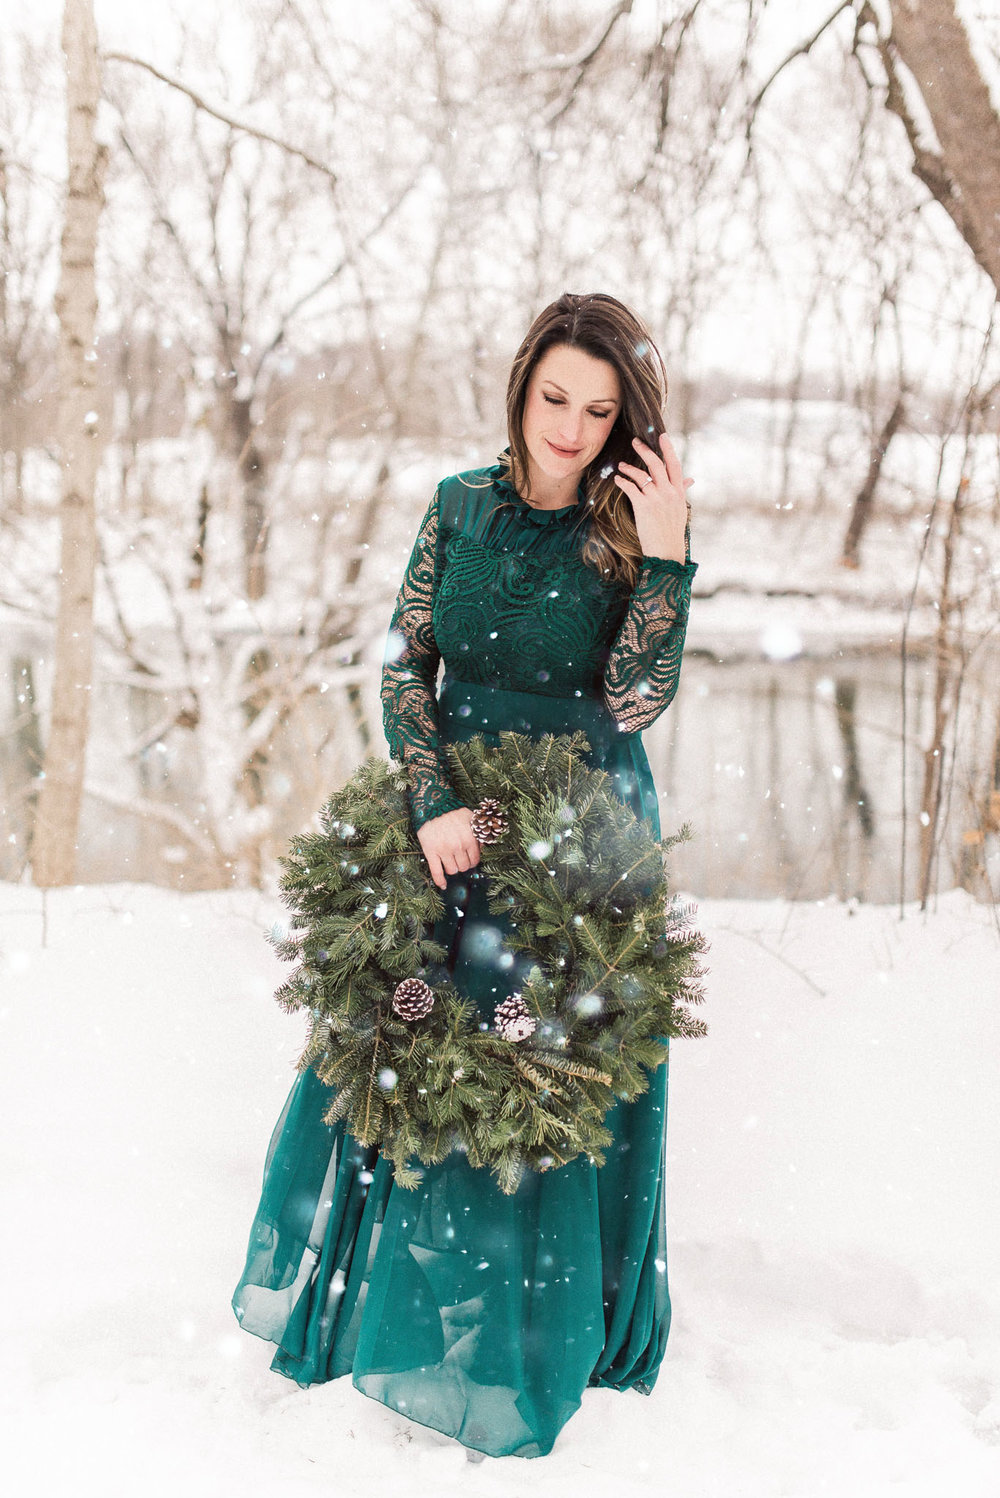 Stephanie + Brody | Enchanting Winter Engagement Photography Session in the Snow | International Destination Wedding & Elopement Photographers in Indianapolis